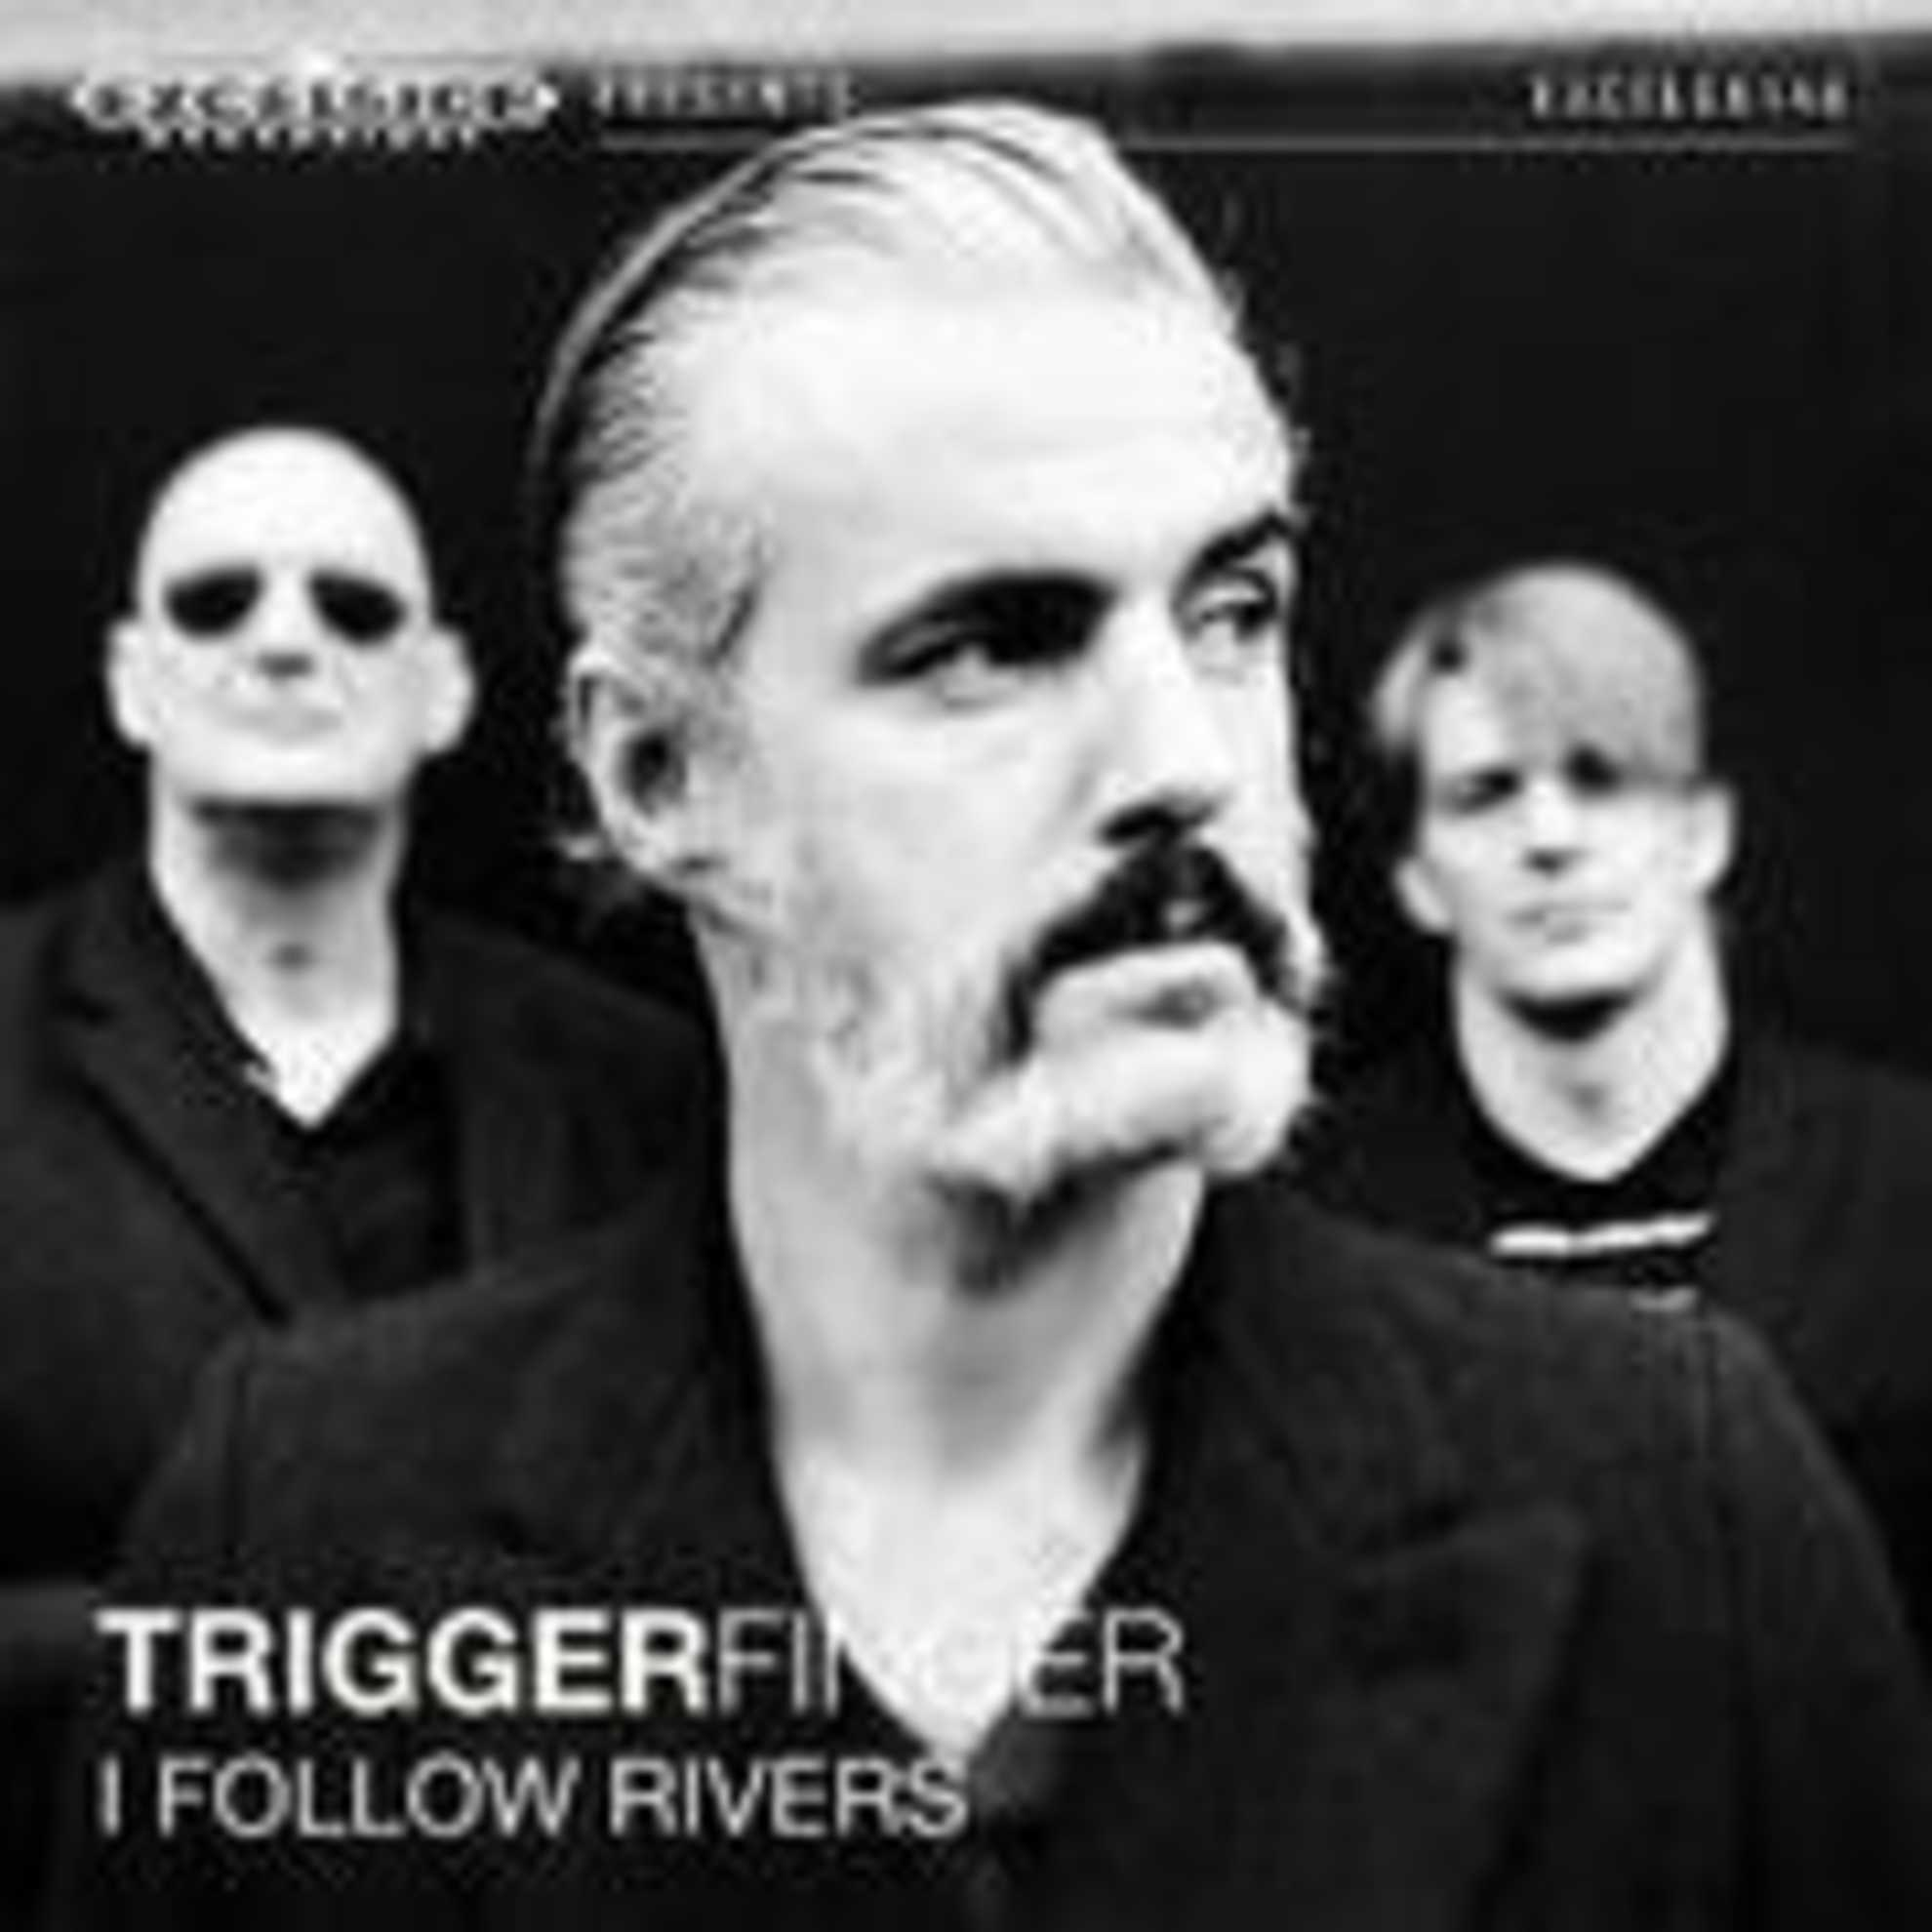 triggerfinger_ifollowrivers